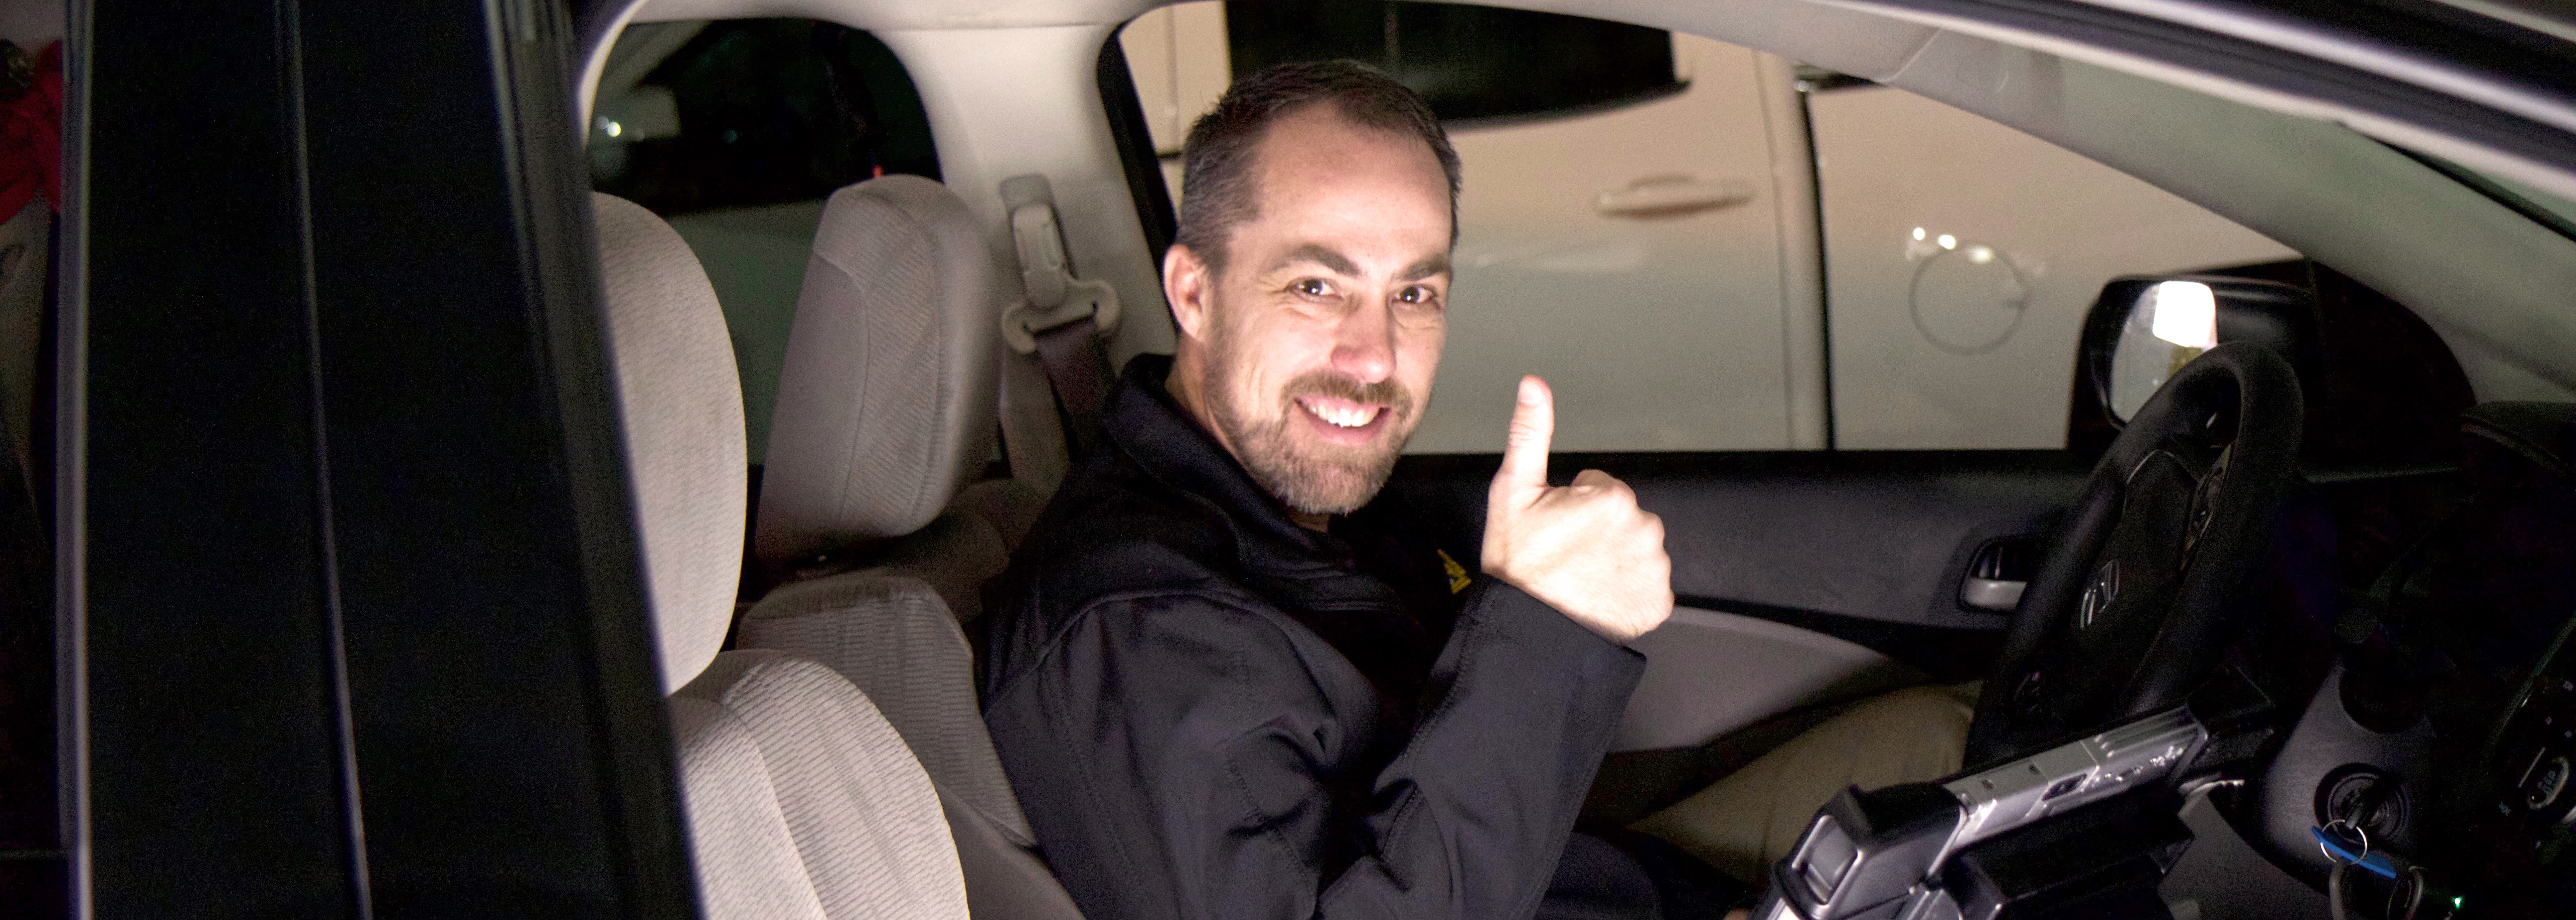 Baylor Parking director giving thumbs up inside a car